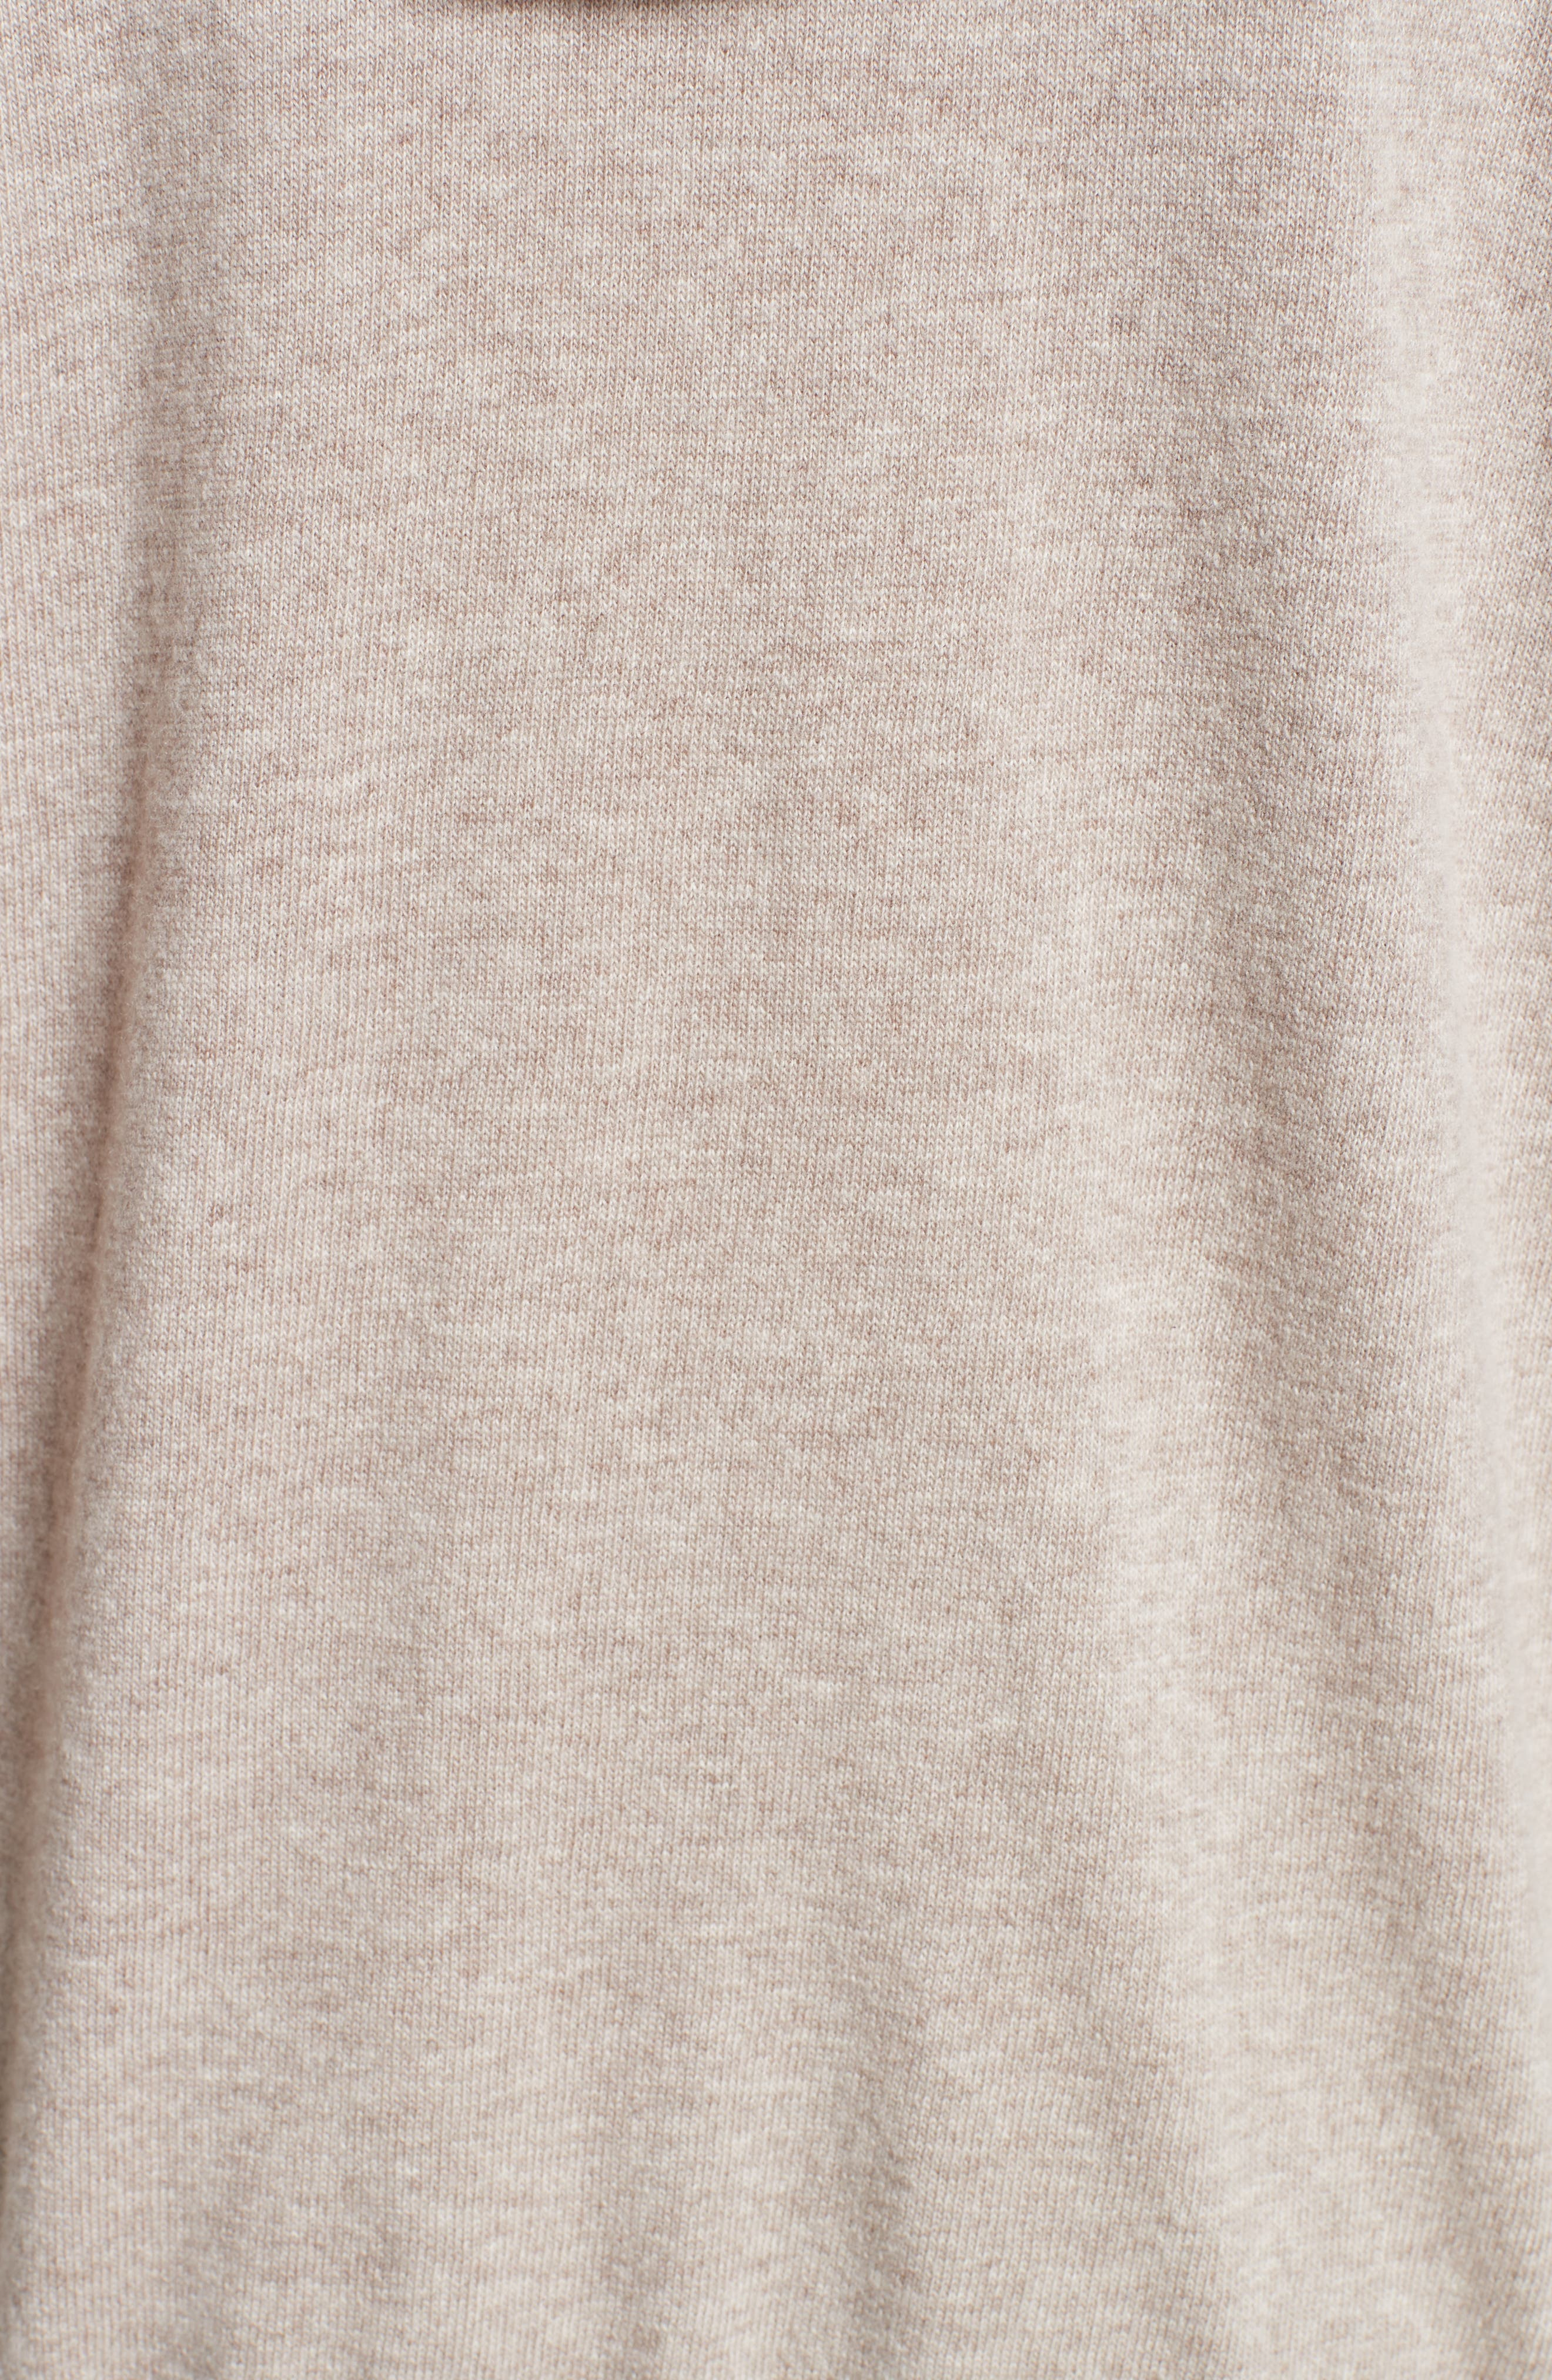 Nitra Wool & Cashmere Hooded Sweater,                             Alternate thumbnail 5, color,                             236